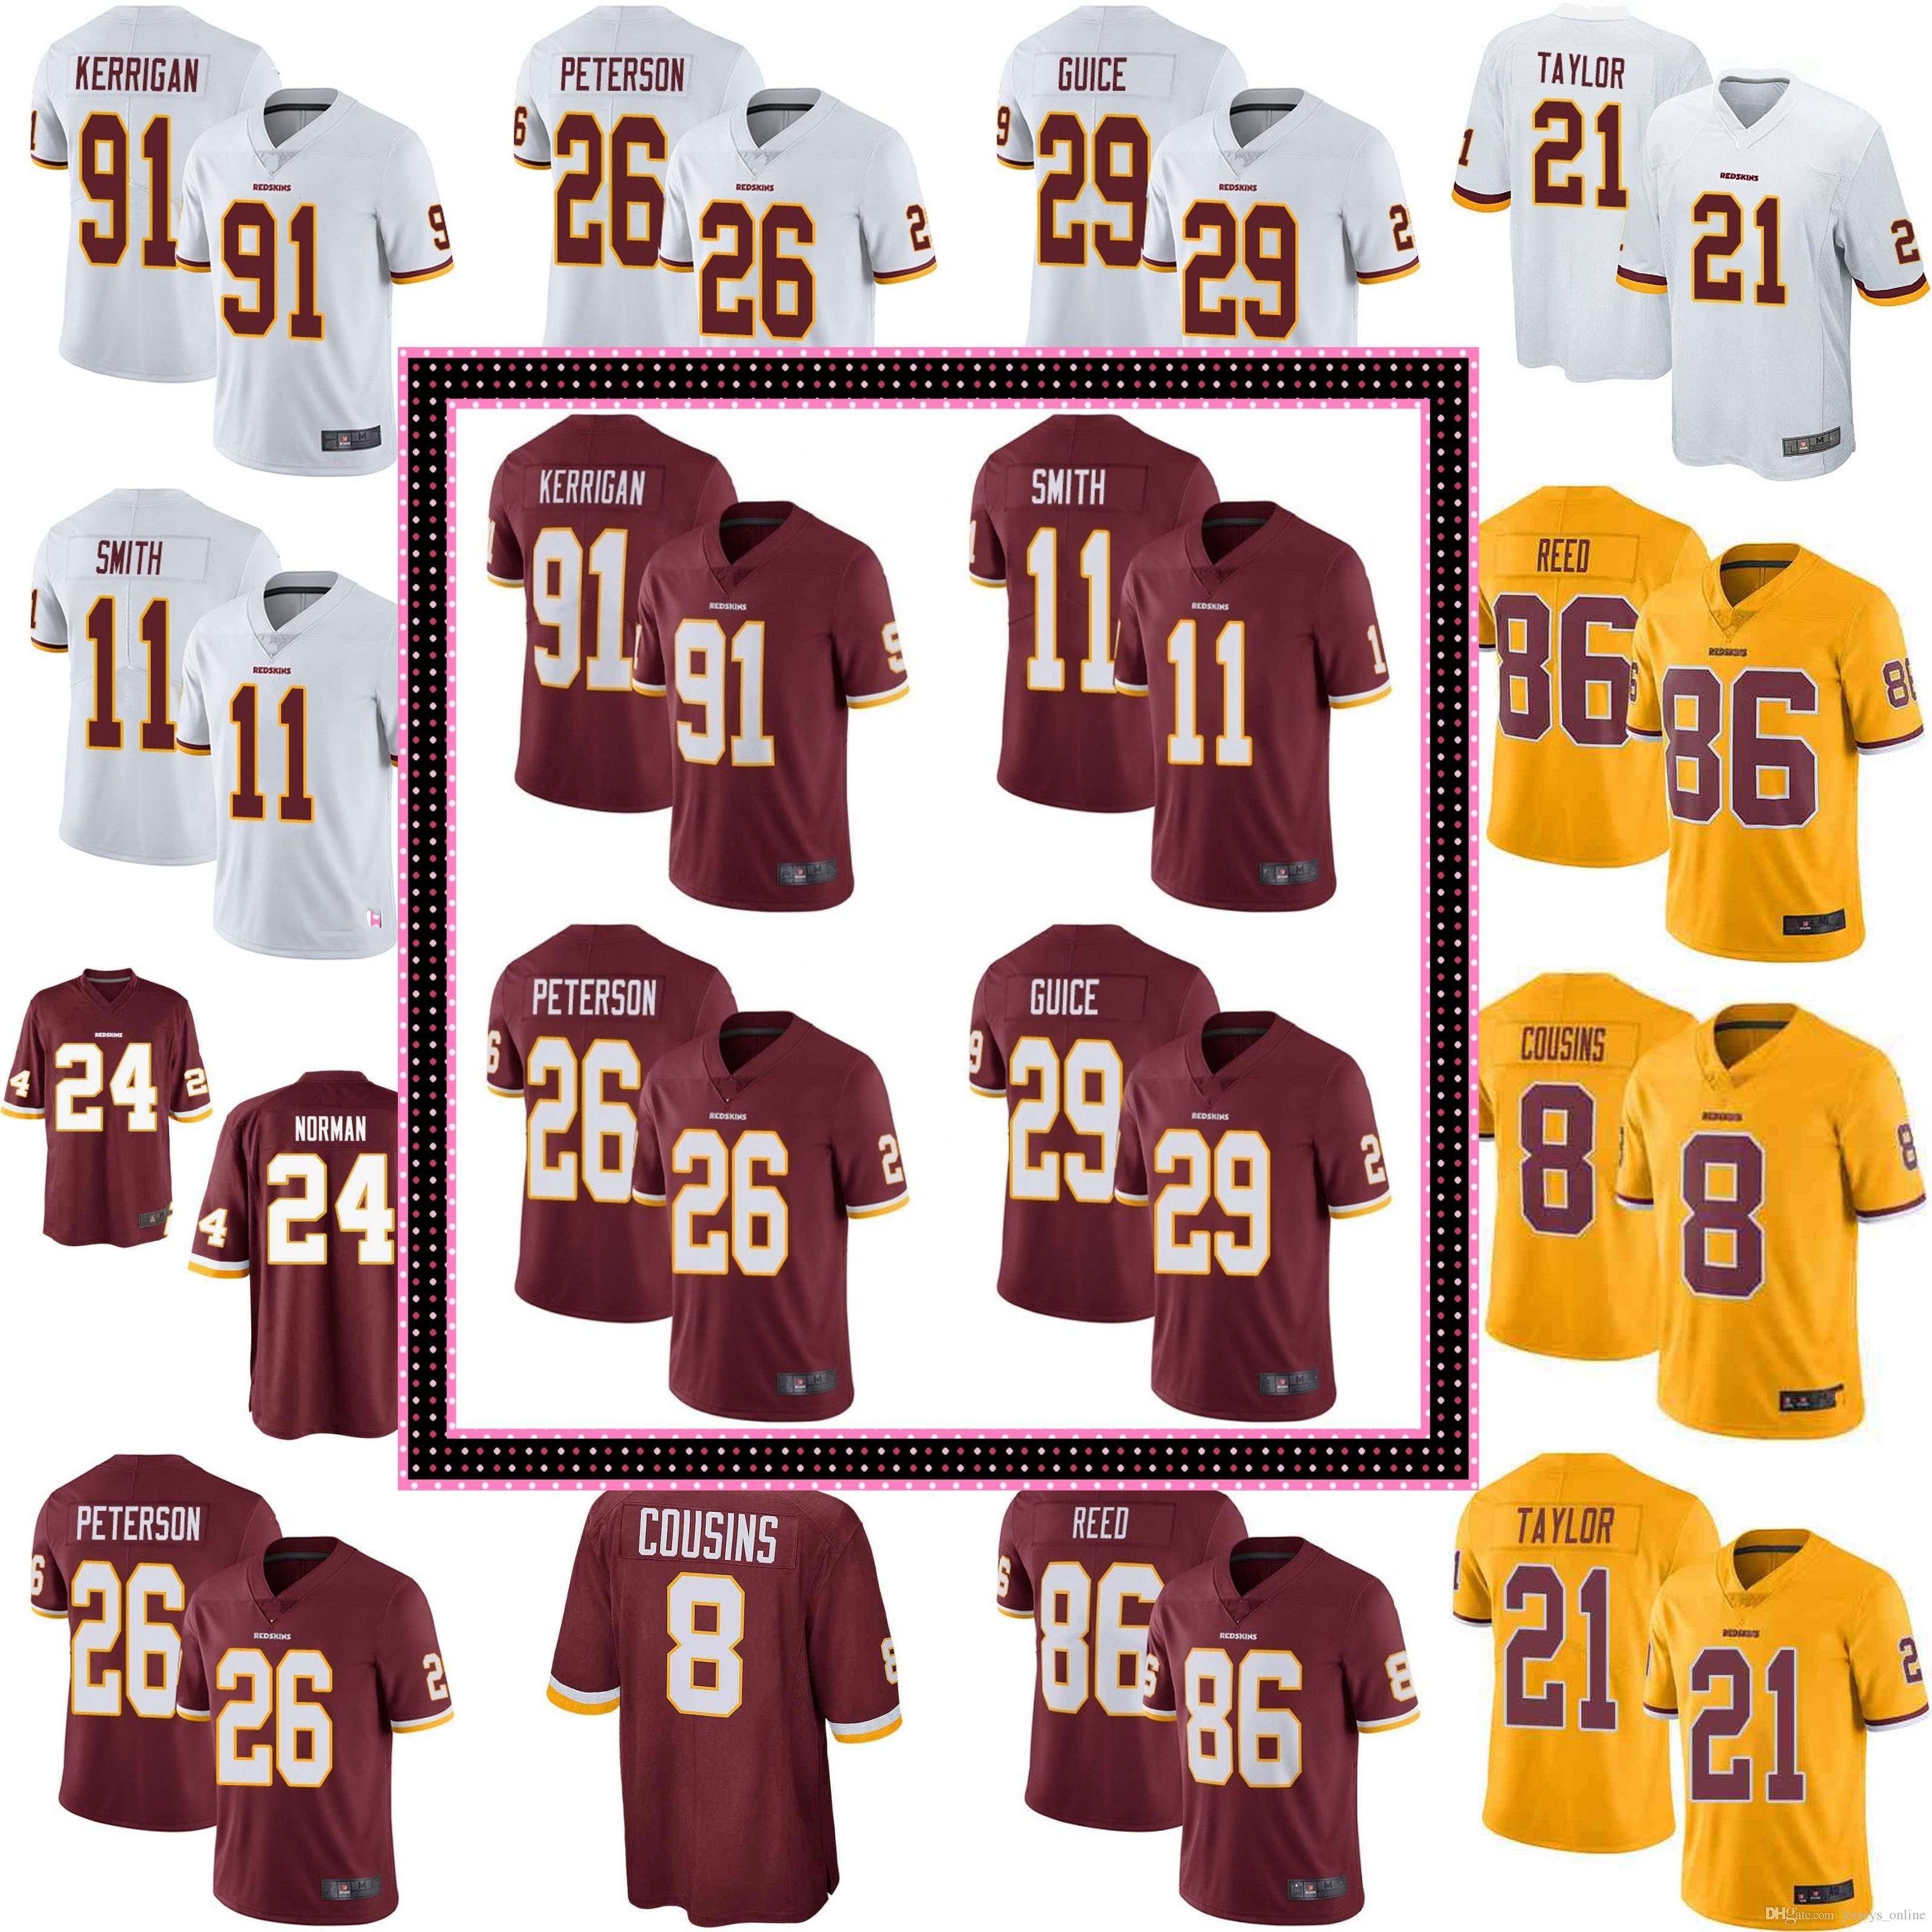 12ae2f1d8e3 2019 Mens Washington 8 Kirk Cousins 11 Alex Smith 21 Sean Taylor Redskins  29 Derrius Guice Jersey 72 Eric Fisher 86 Reed 95 Da'Ron Payne Jerseys From  ...